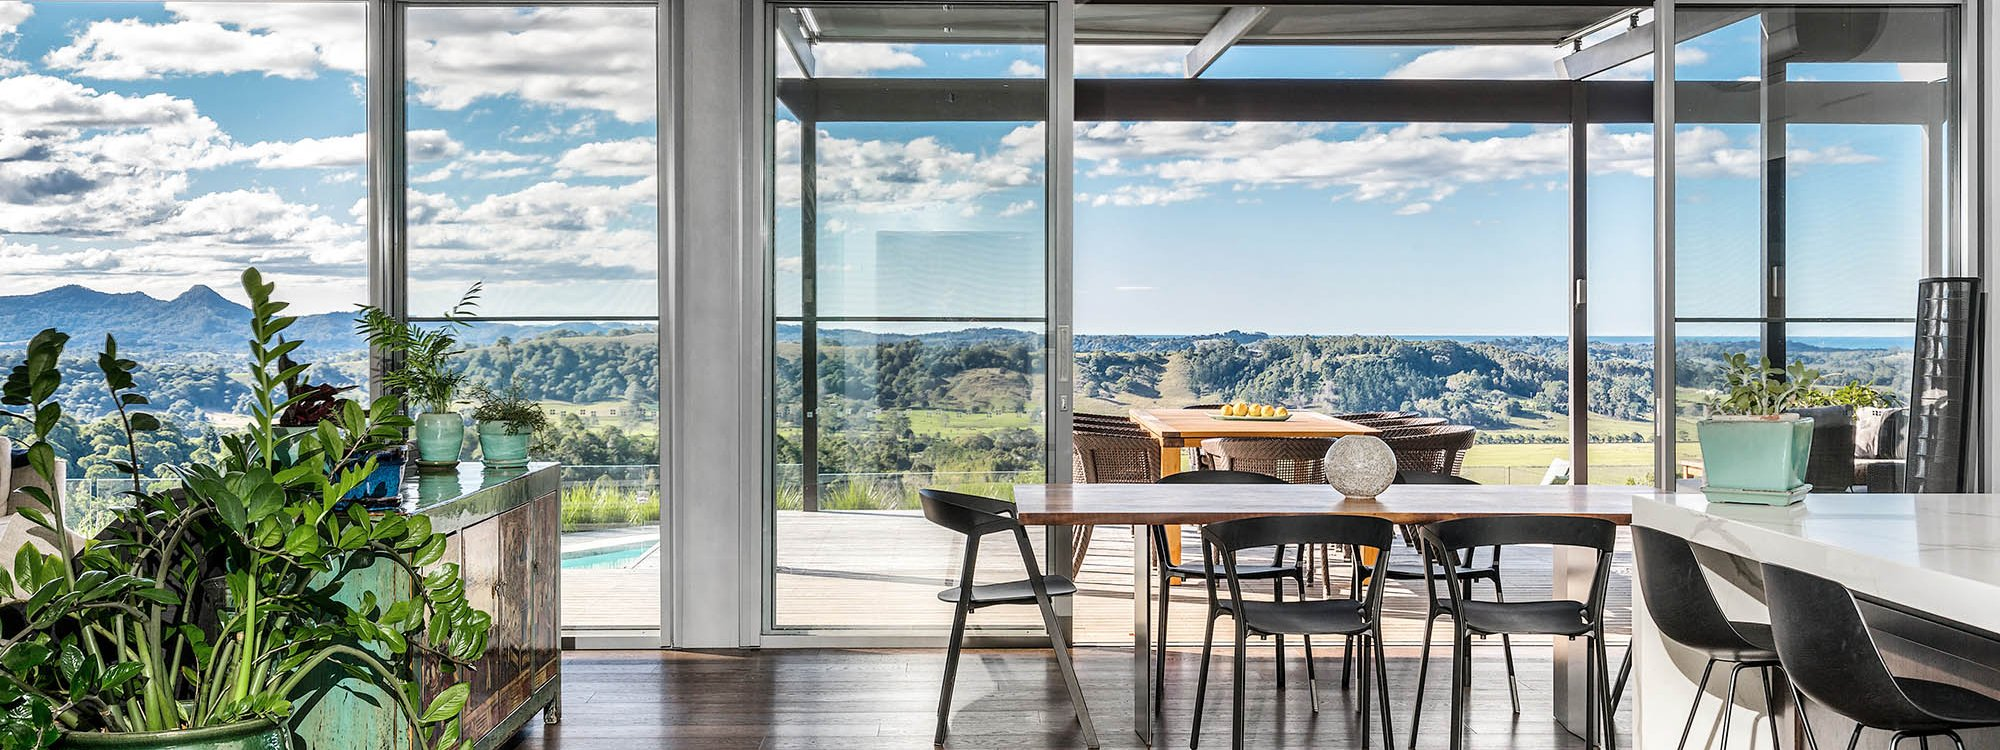 Summer Breeze - Byron Bay - Kitchen and Living b